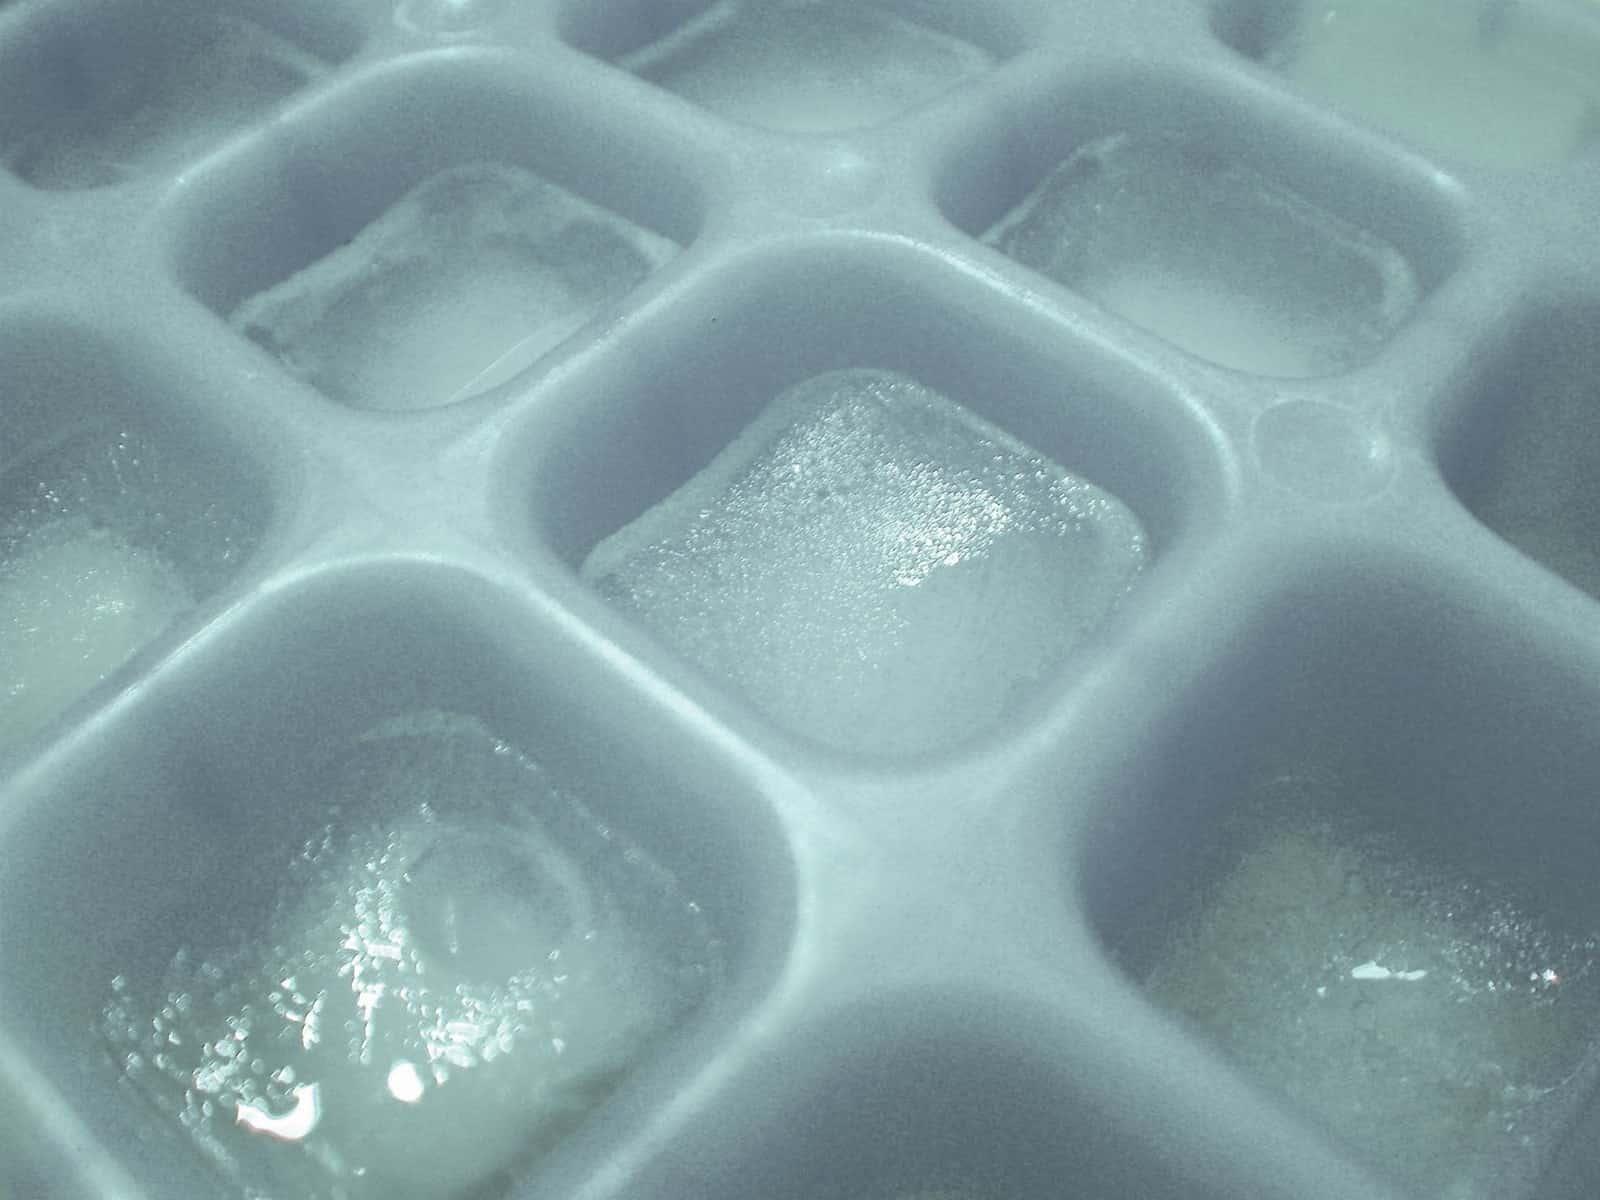 aloe gel frozen in ice cube tray